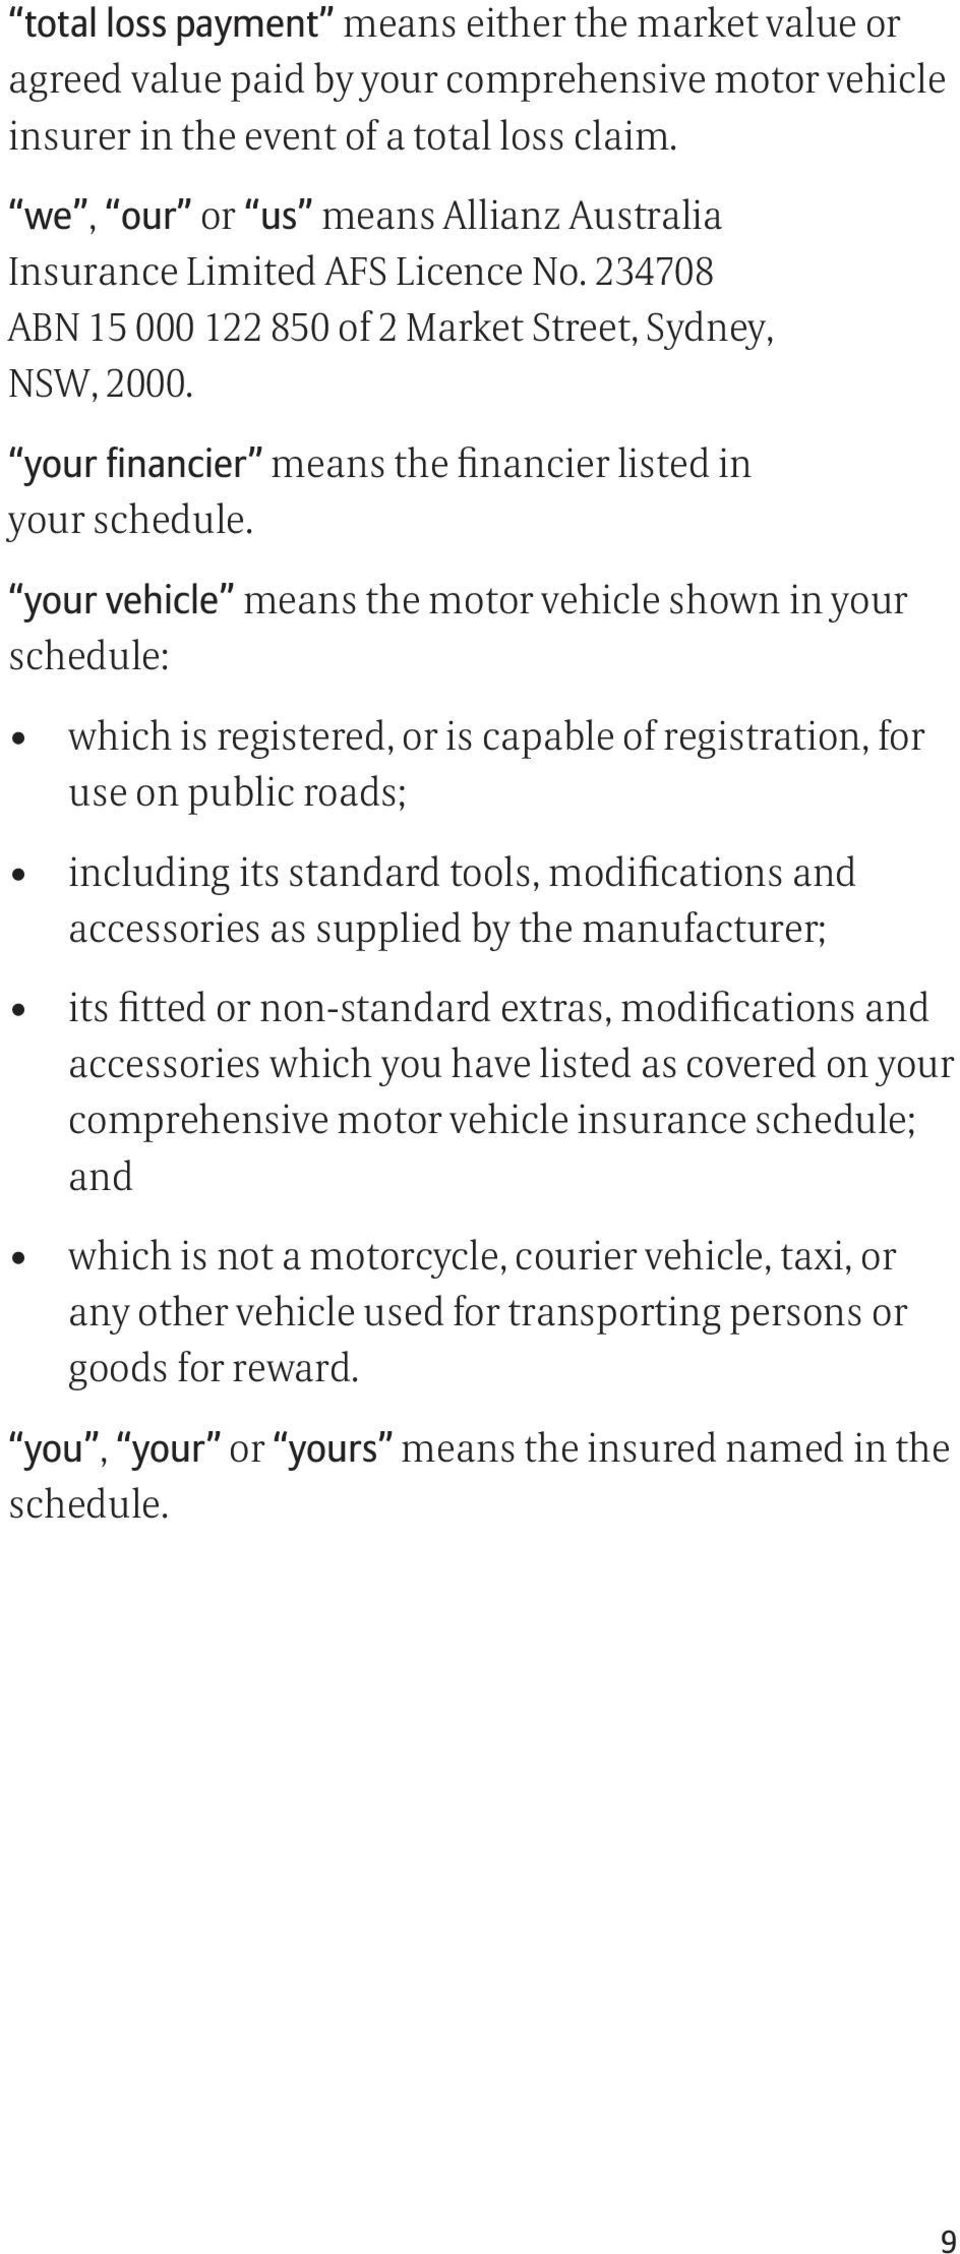 your vehicle means the motor vehicle shown in your schedule: which is registered, or is capable of registration, for use on public roads; including its standard tools, modifications and accessories